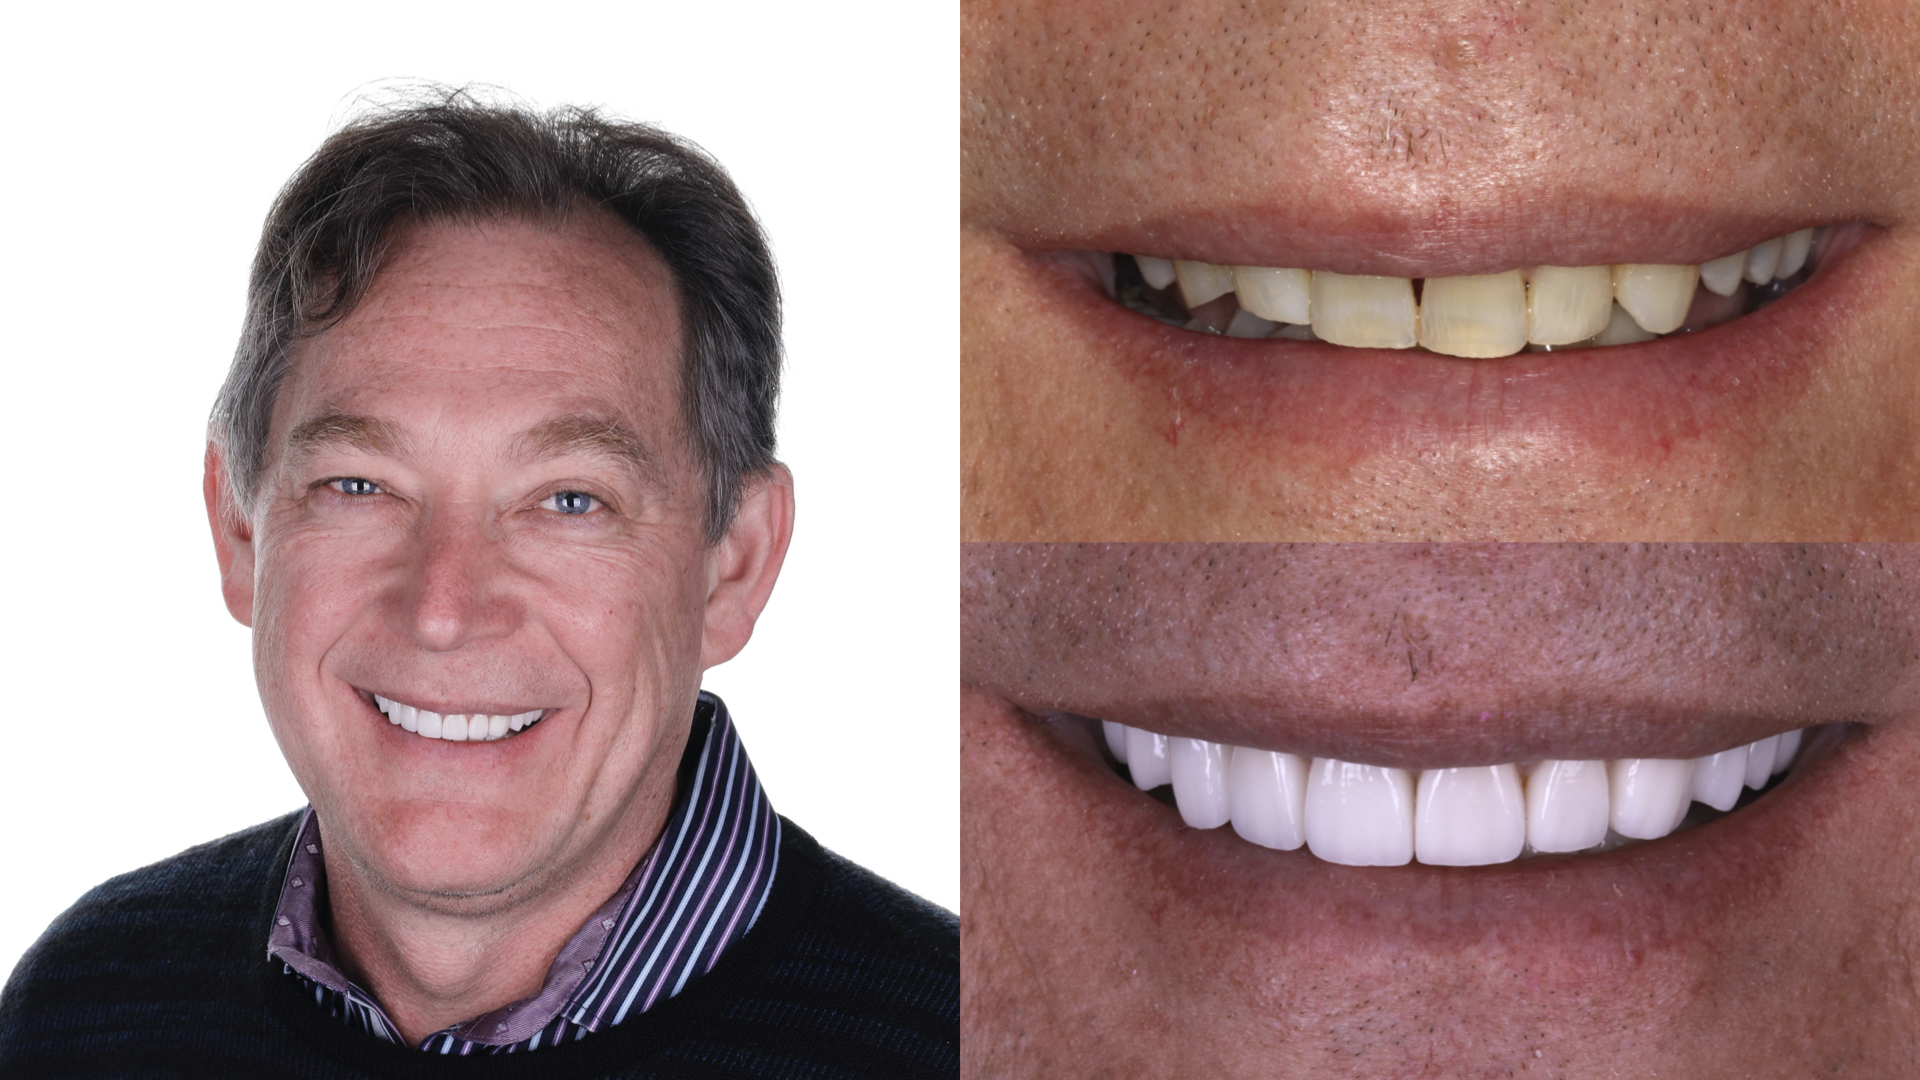 dental implants. porcelain veneers. full mouth reconstruction